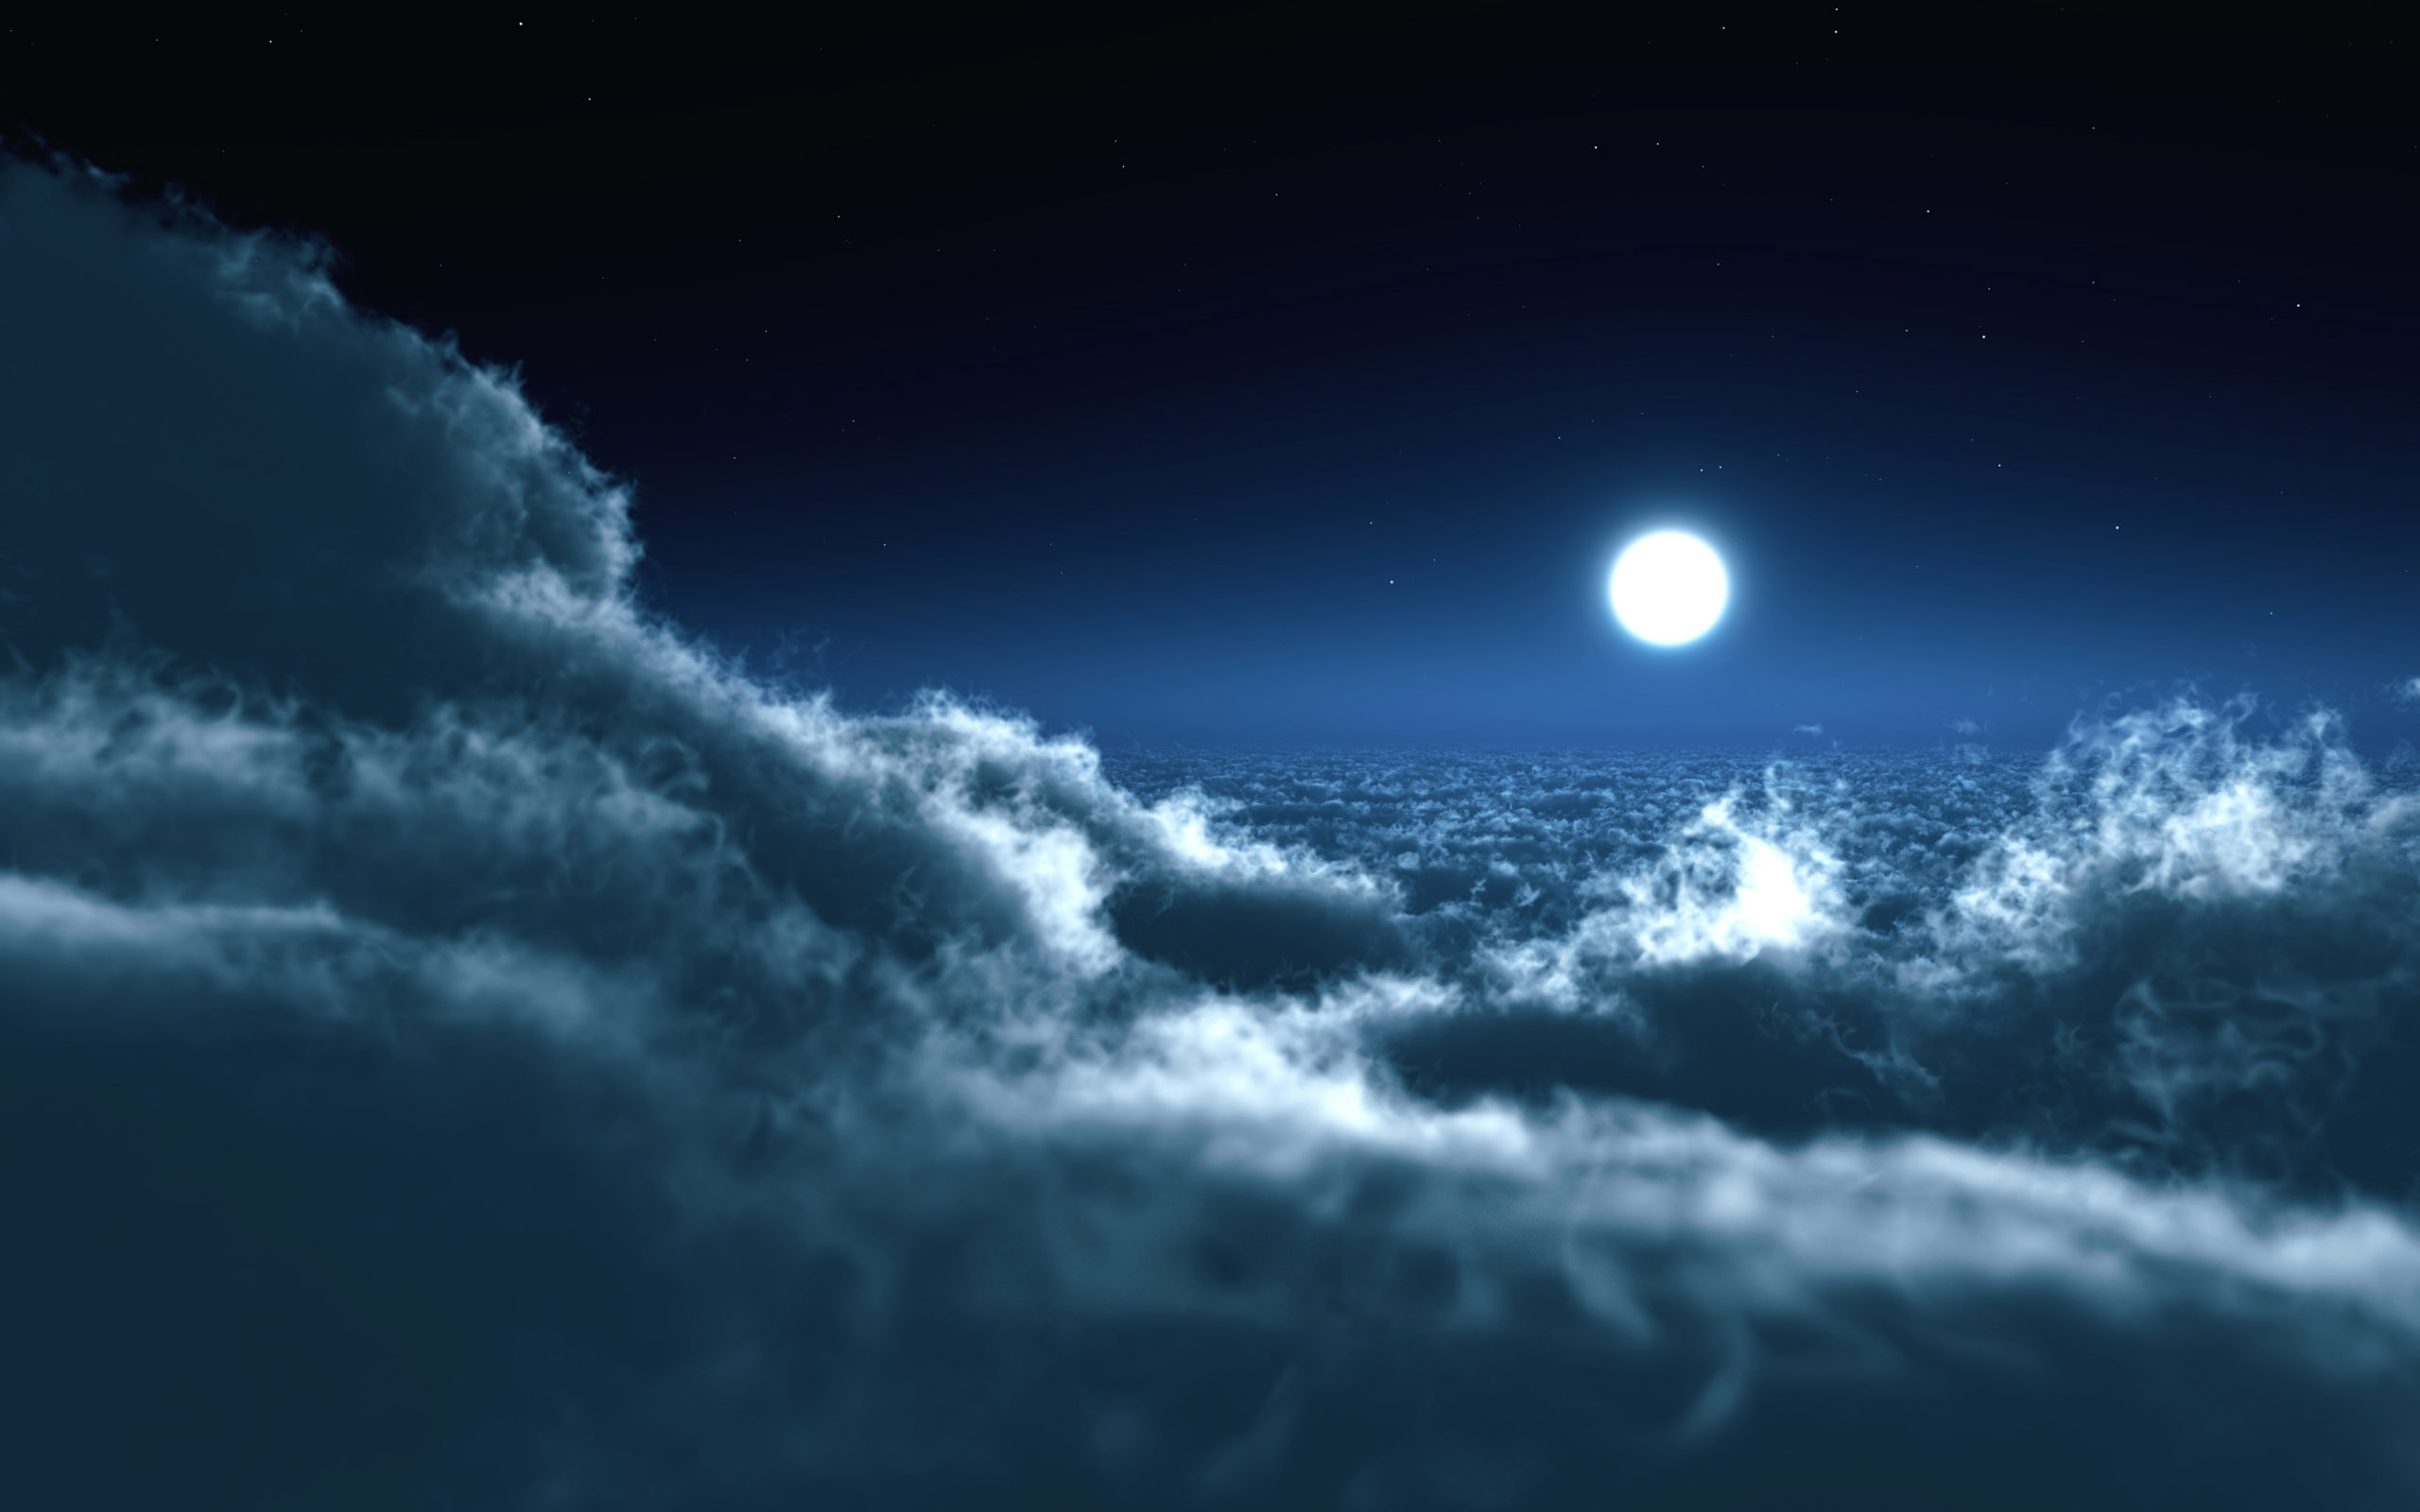 Moon Over Clouds Wallpapers HD Wallpapers 2560x1600